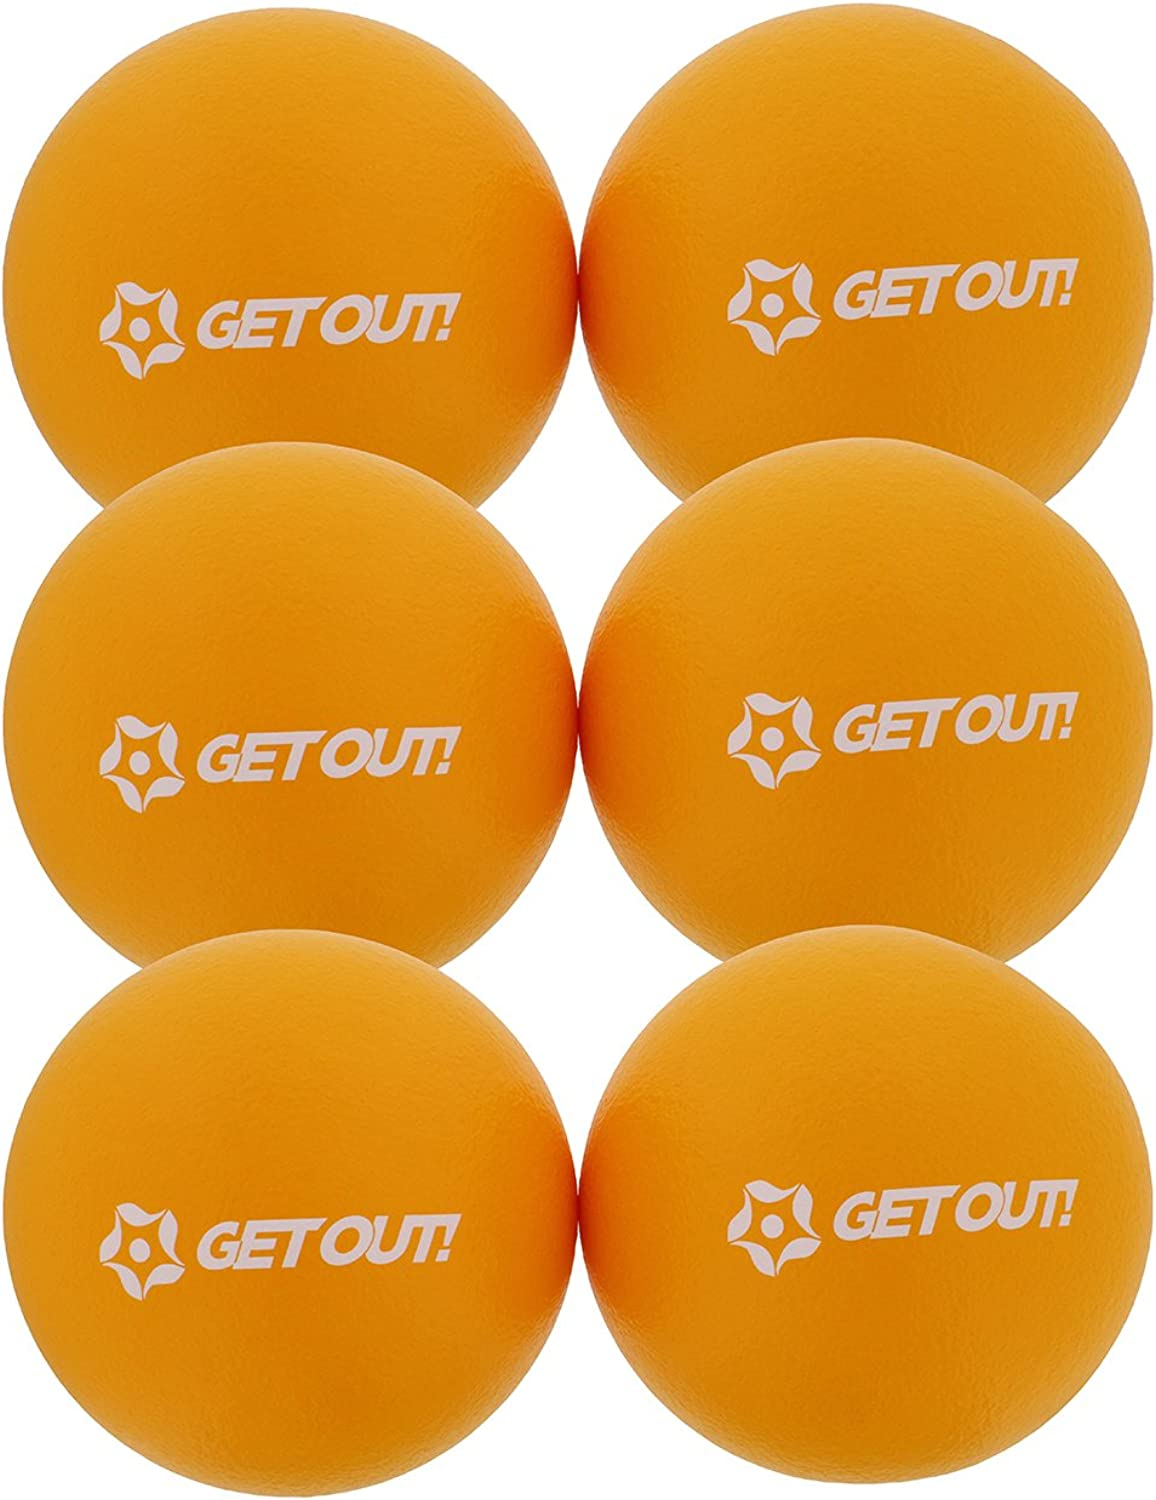 6  Inch Foam Dodgeballs 6Pack Set  Soft, Lightweight, LatexFree Sponge Playground Dodgeball Balls